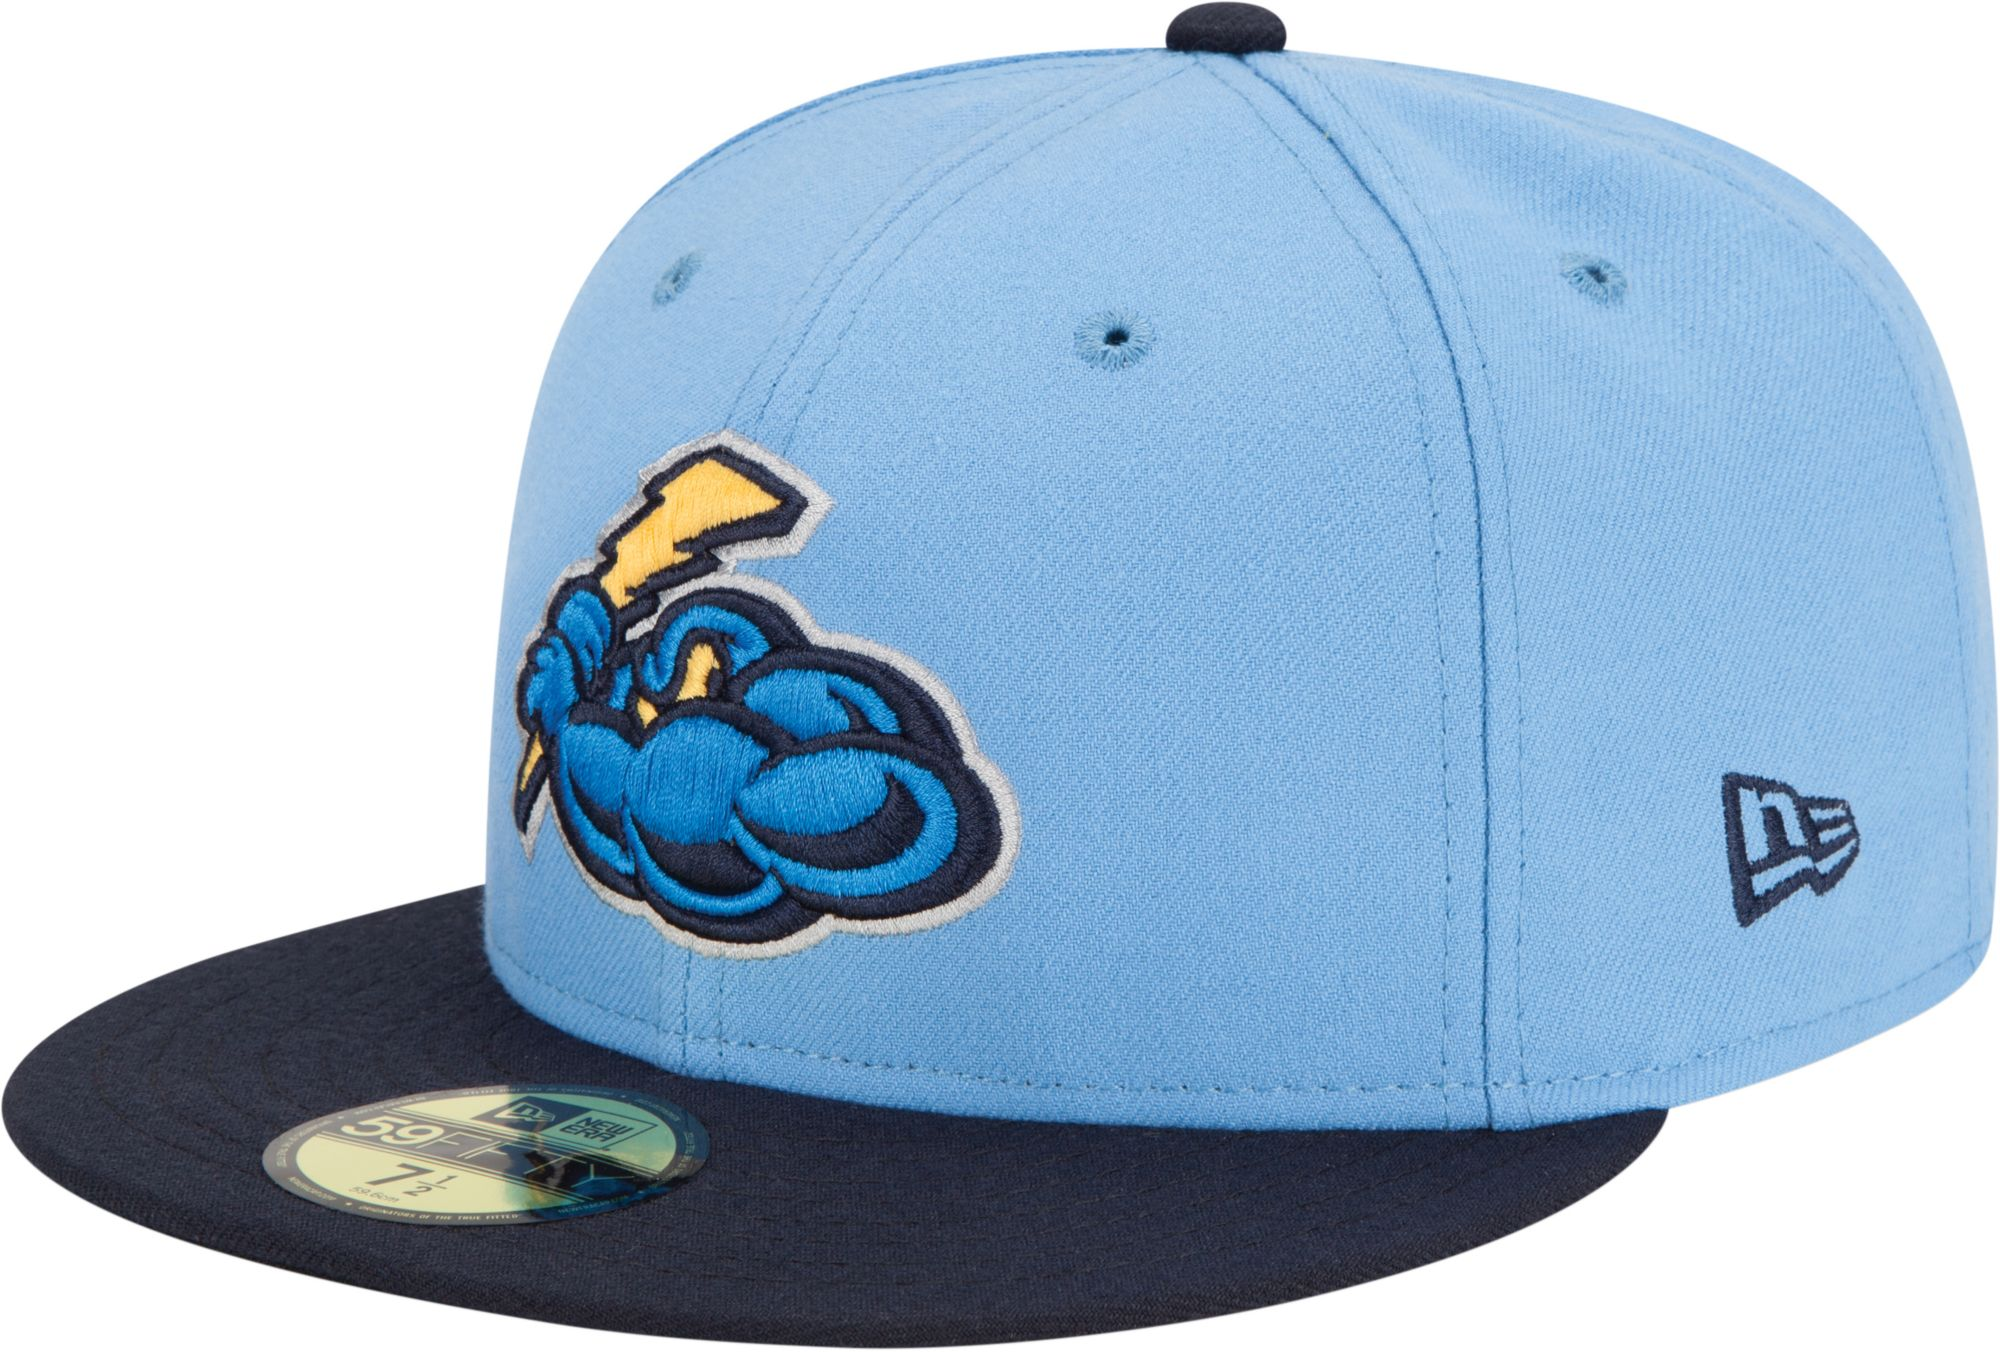 8b6dc7fb961 New Era Men s Trenton Thunder 59Fifty Fitted Hat